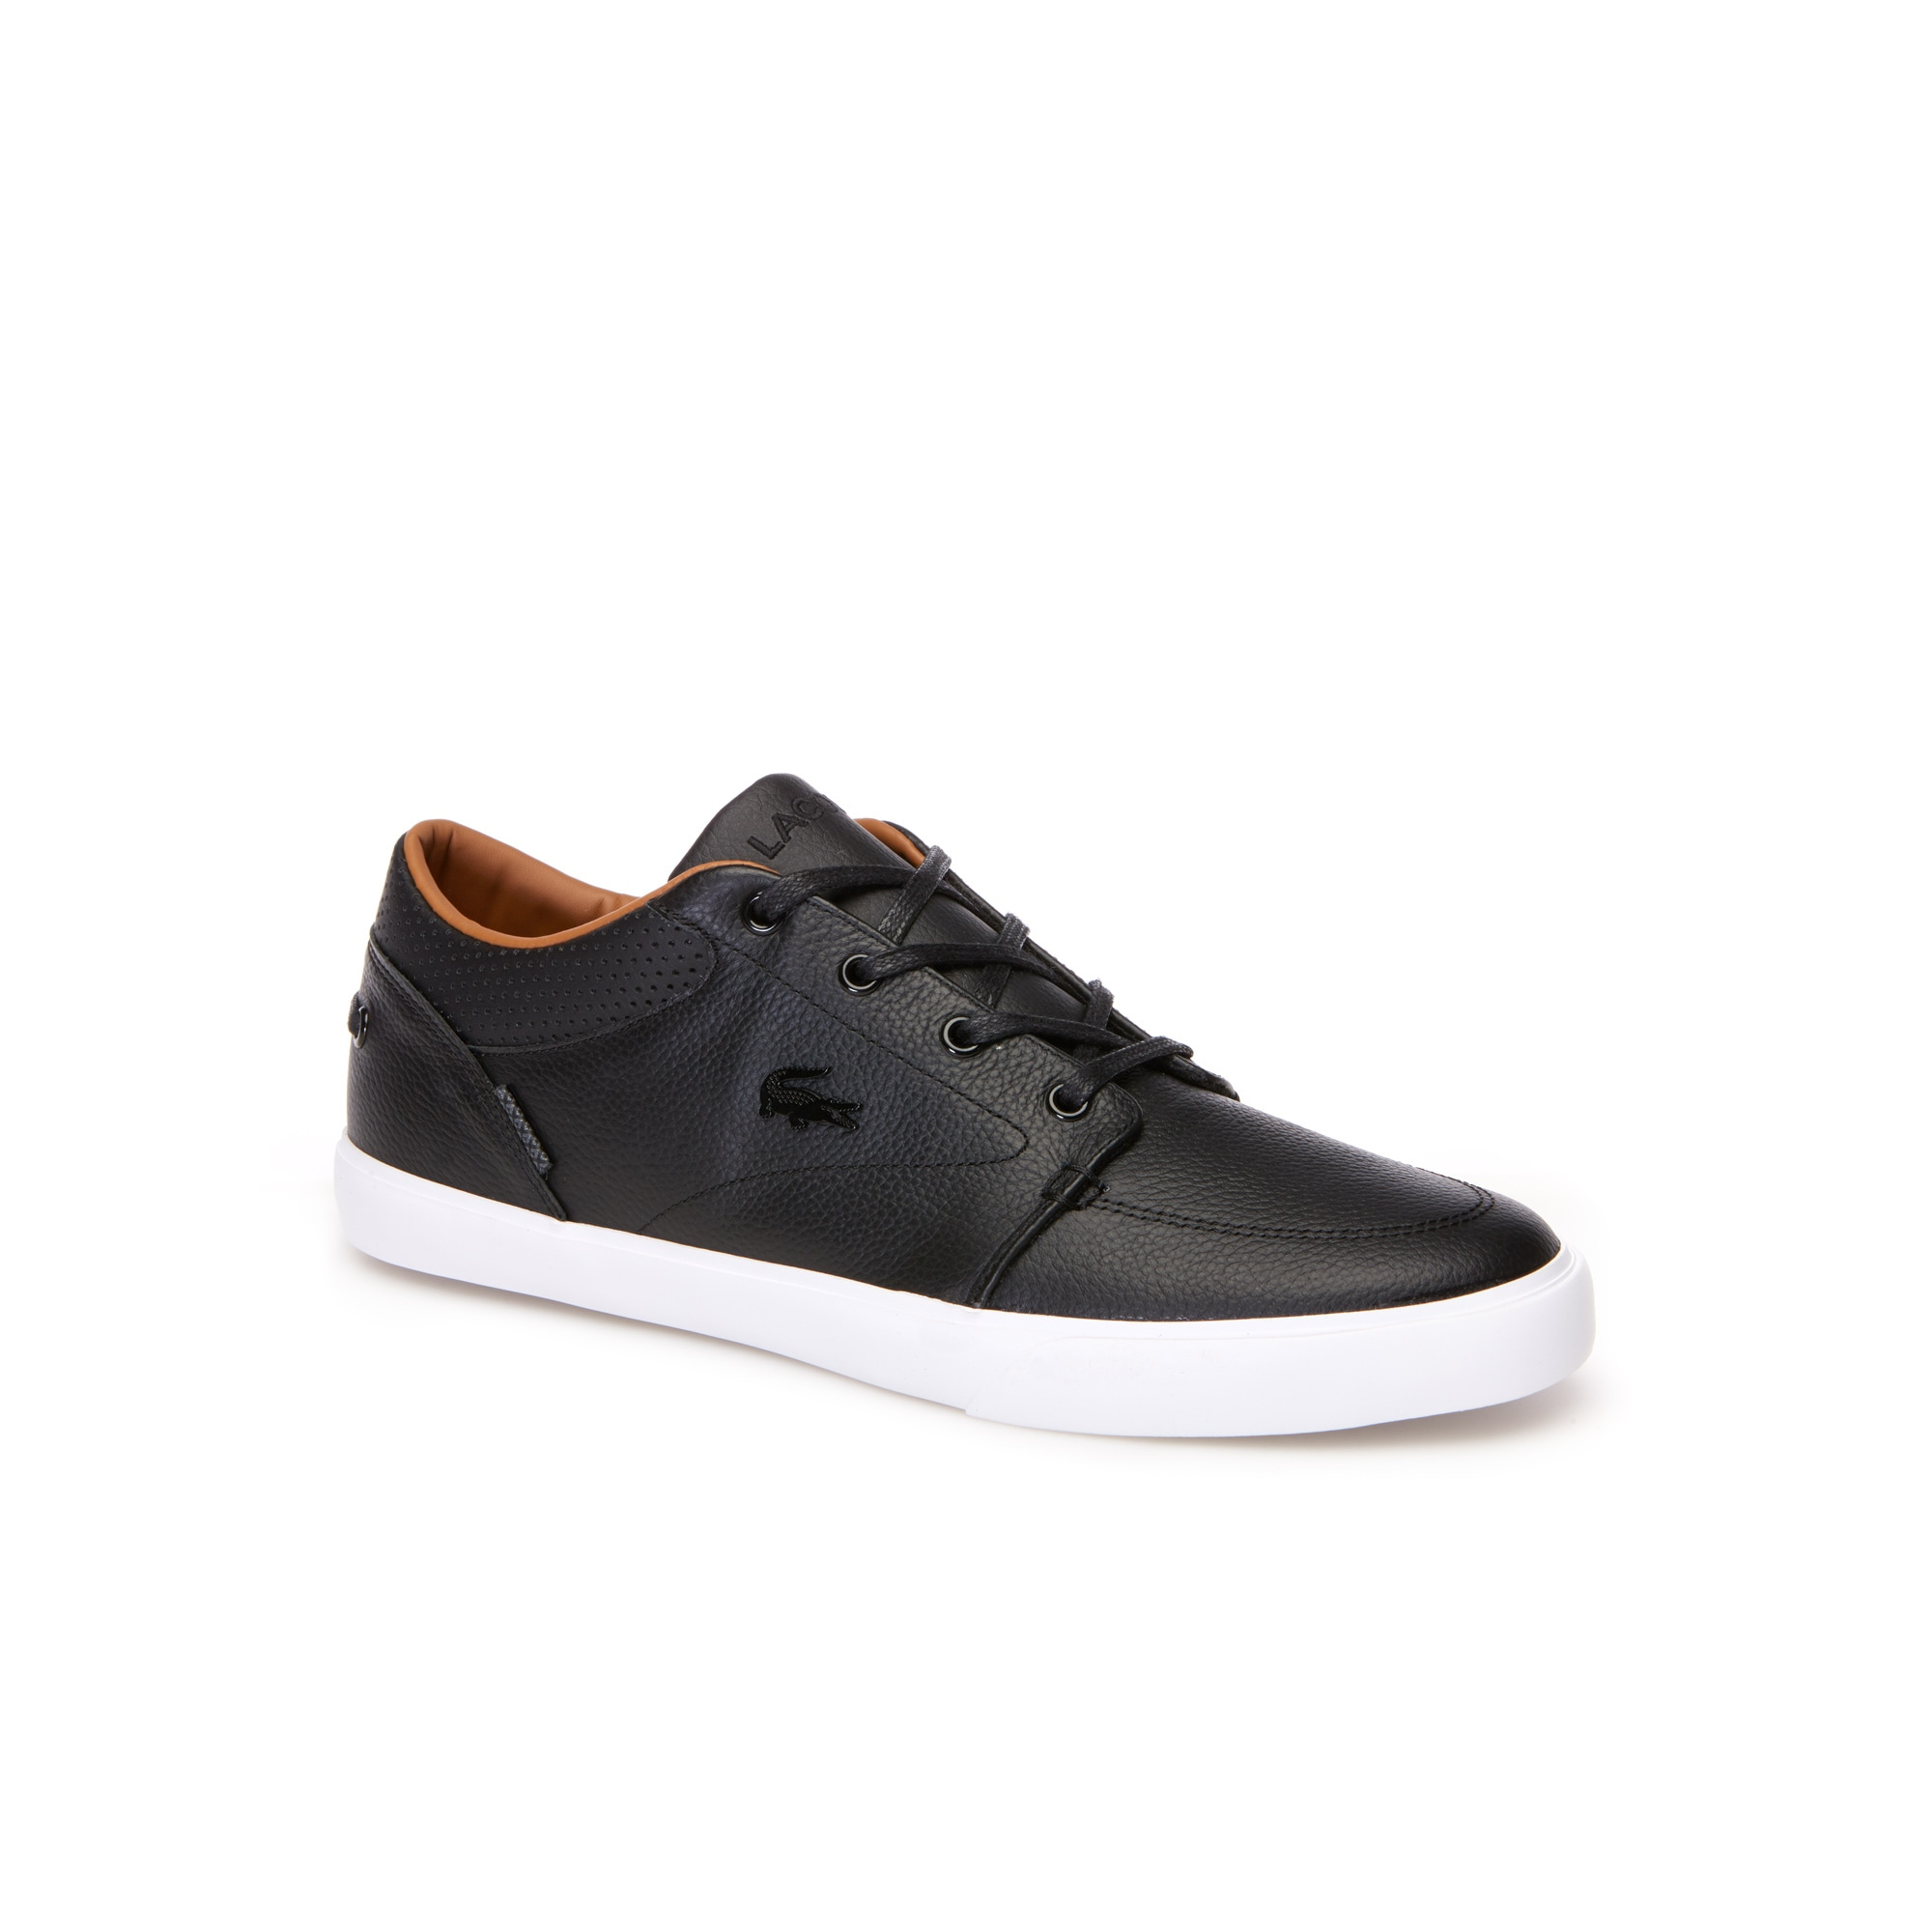 Sneakers basses à lacets Bayliss VULC en cuir